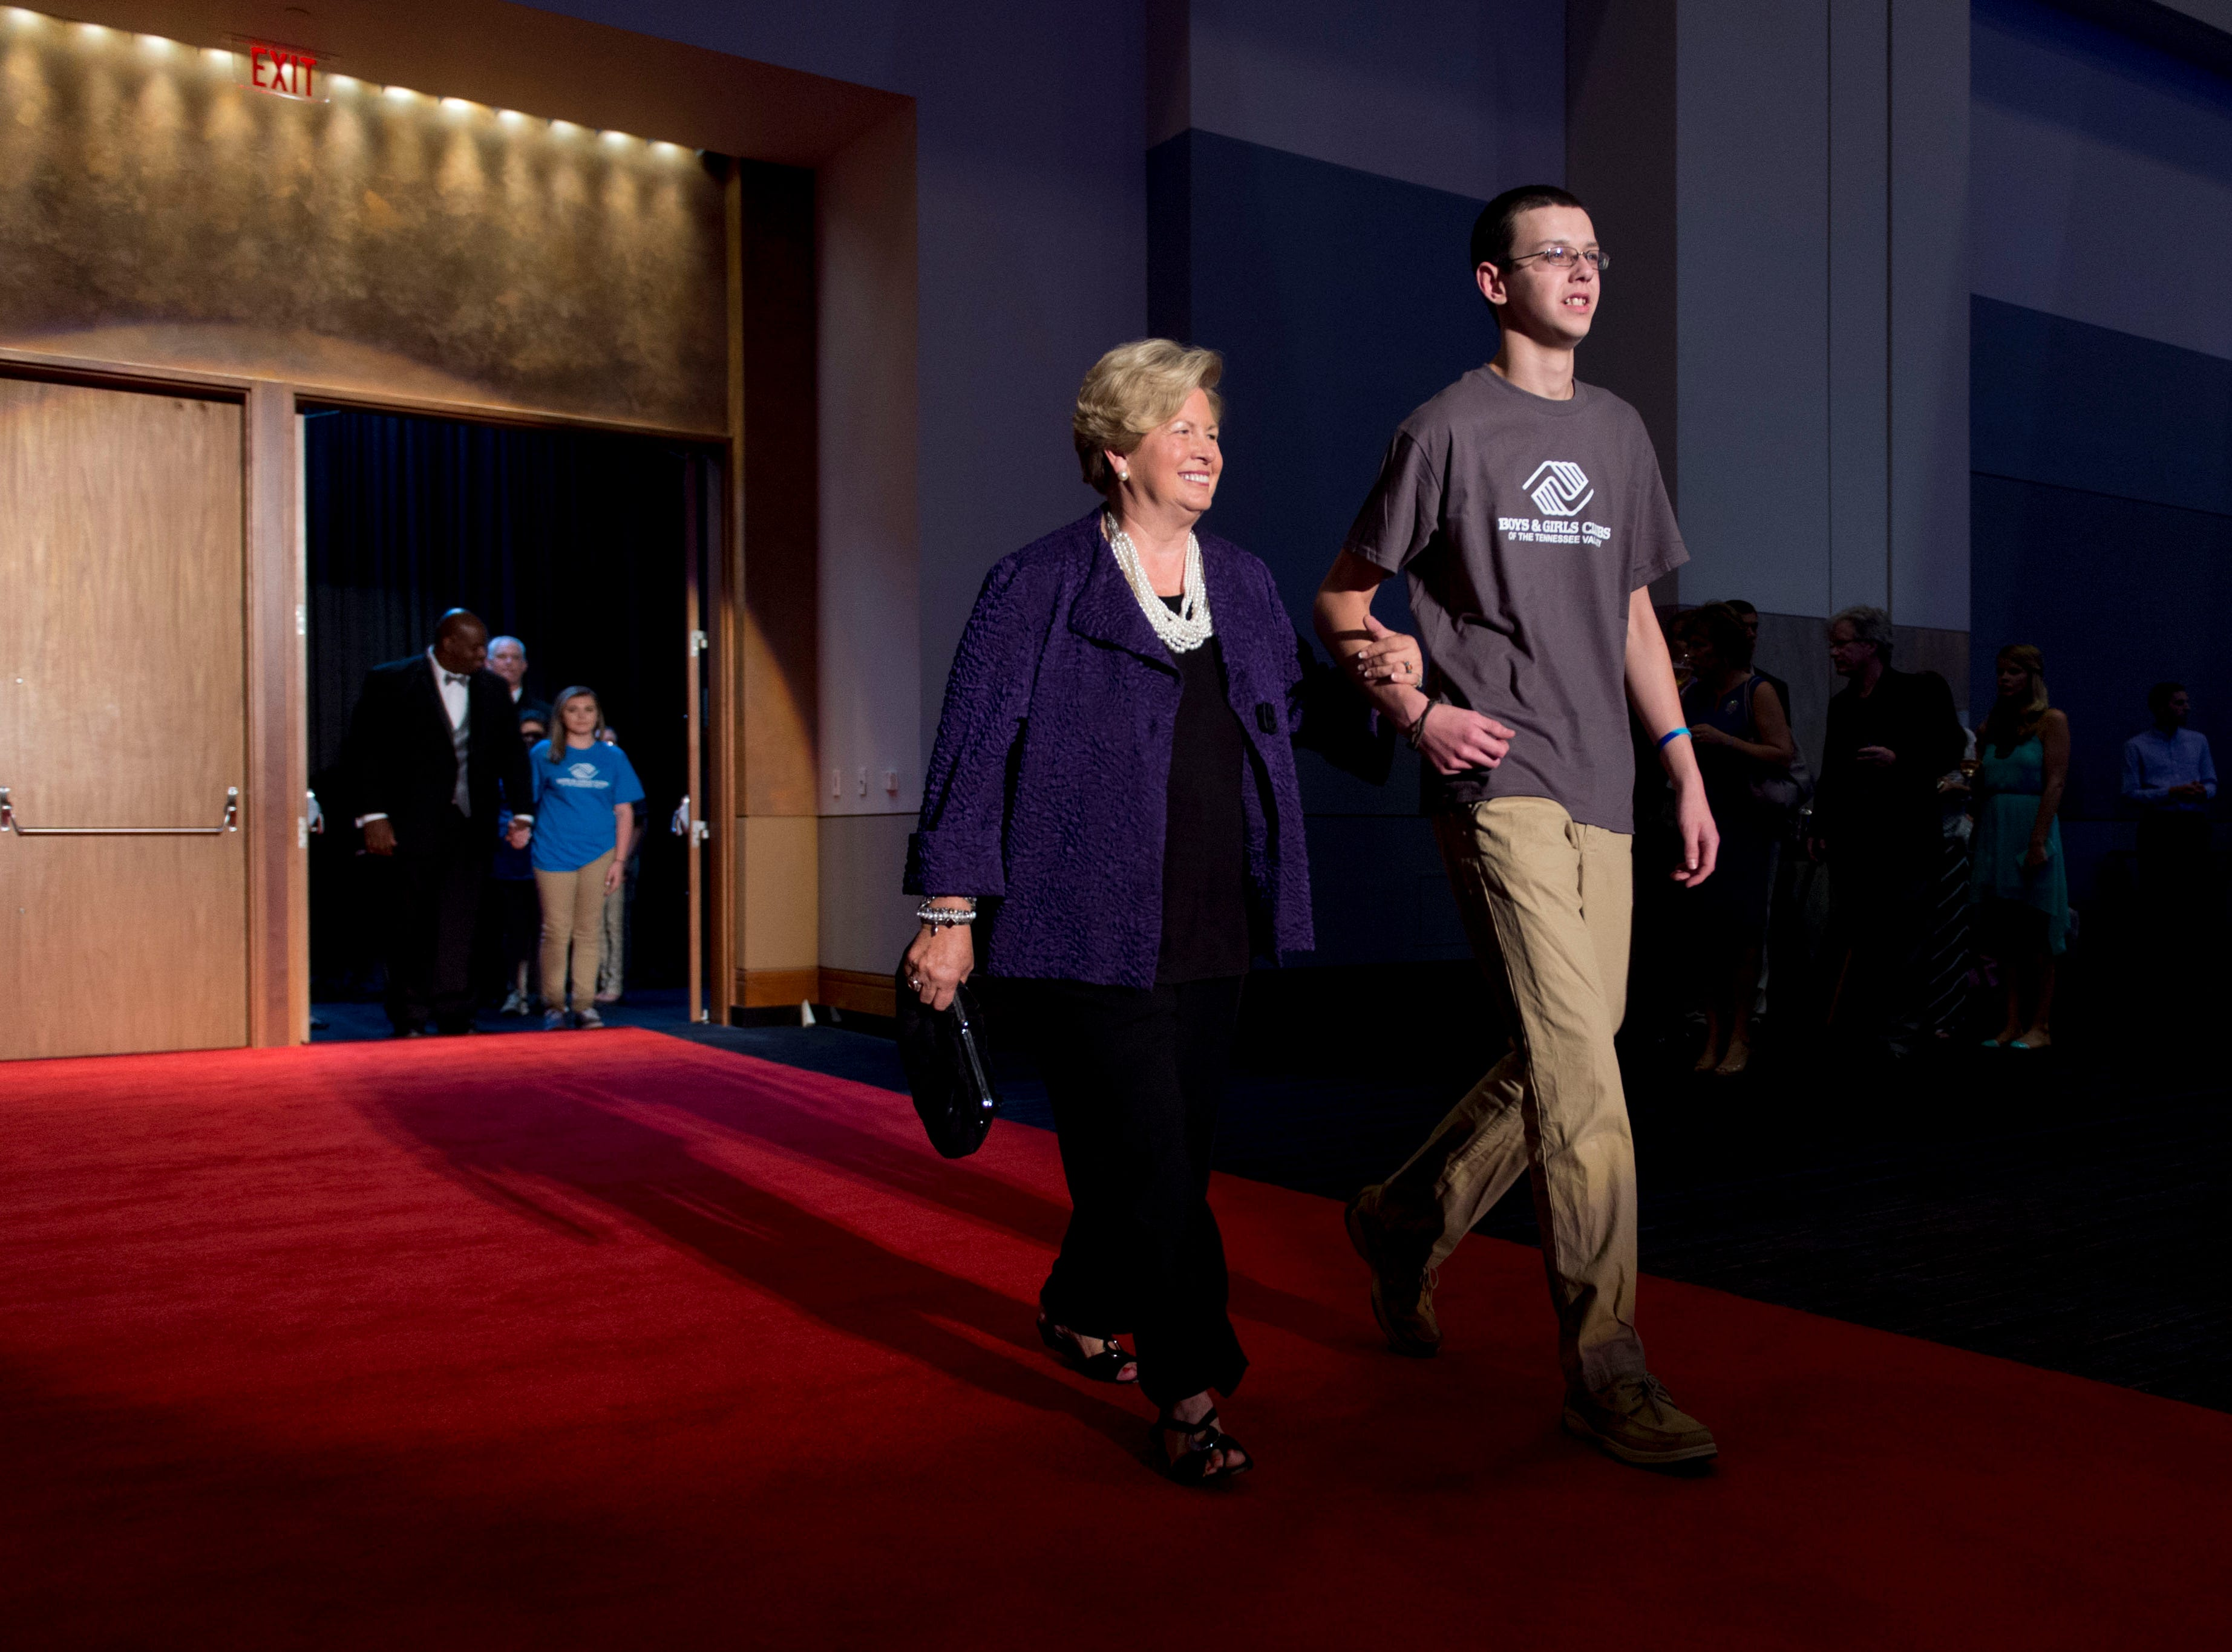 Joan Cronan is escorted into the ballroom during the Archie Greater Knoxville Sports Hall of Fame induction ceremony on Tuesday, August 4, 2015 at the Knoxville Convention Center.